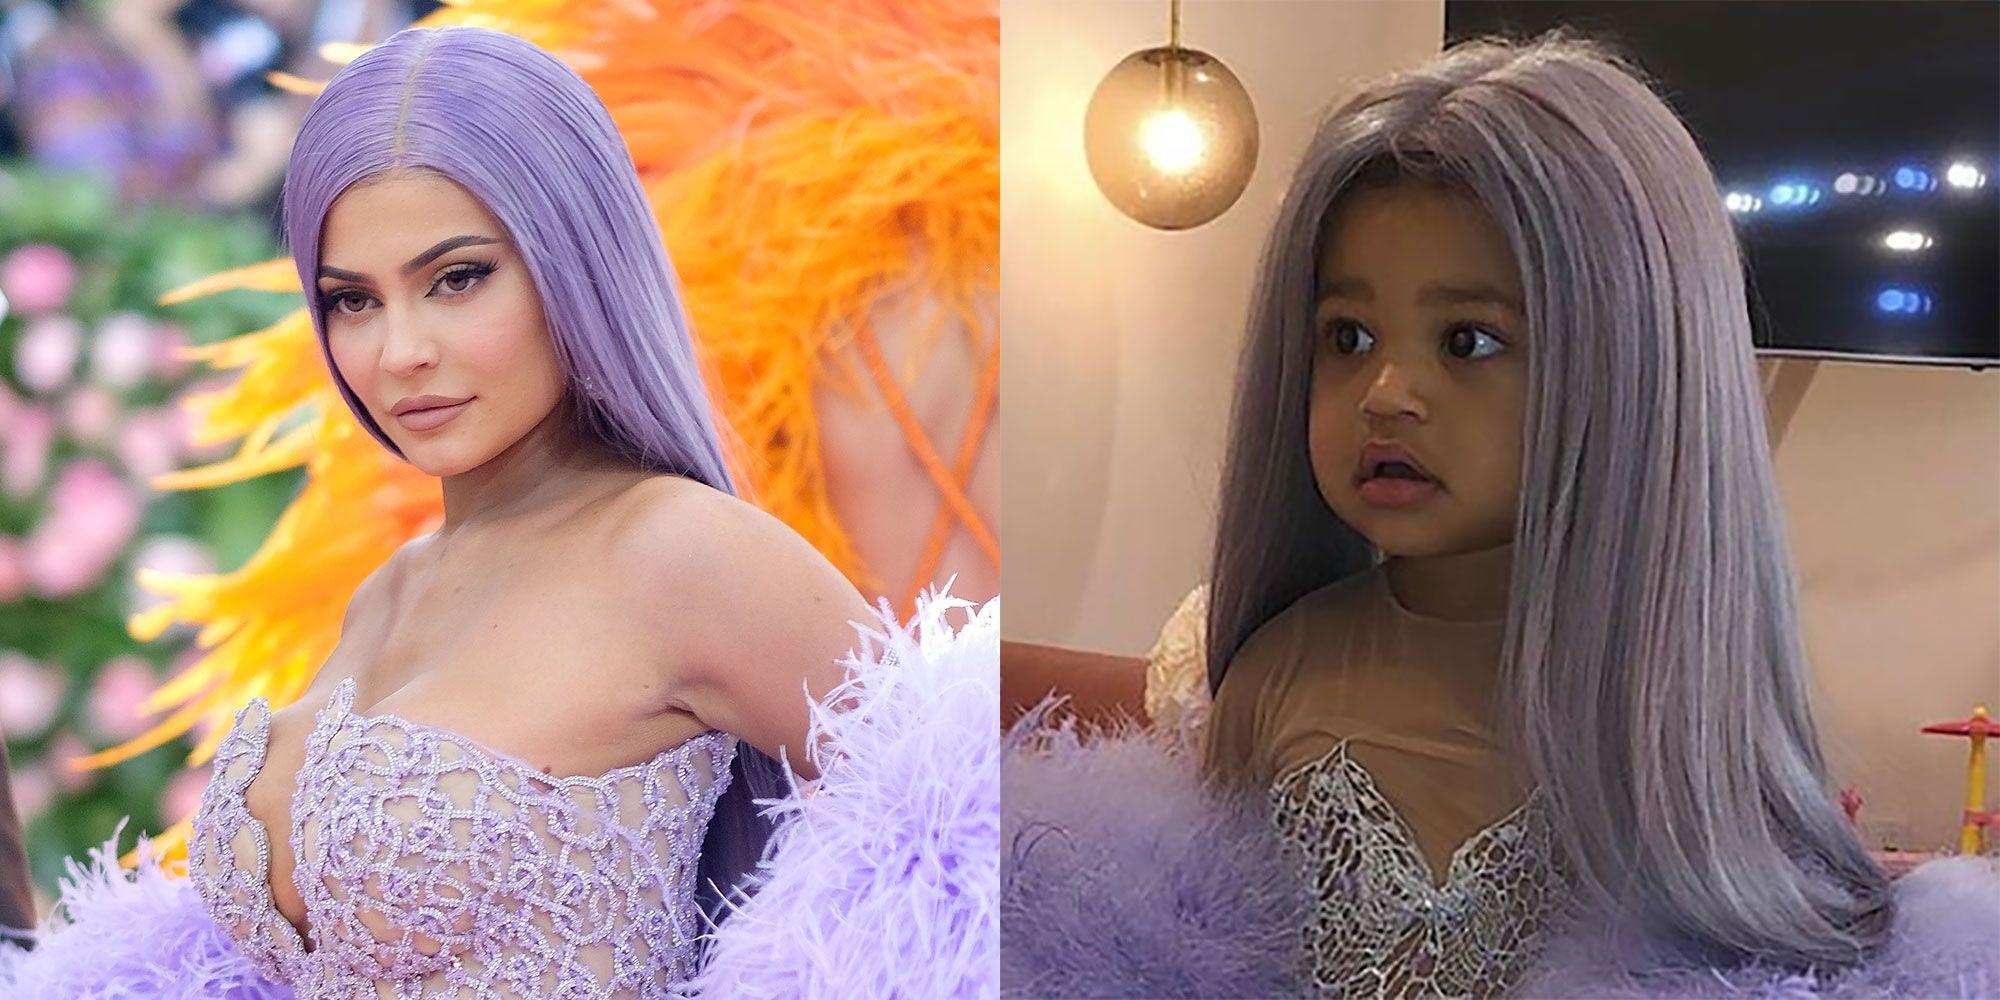 Kylie Jenner's Baby Girl Stormi Channels Her Mom's Met Gala Look - Check Out The Sweet Video